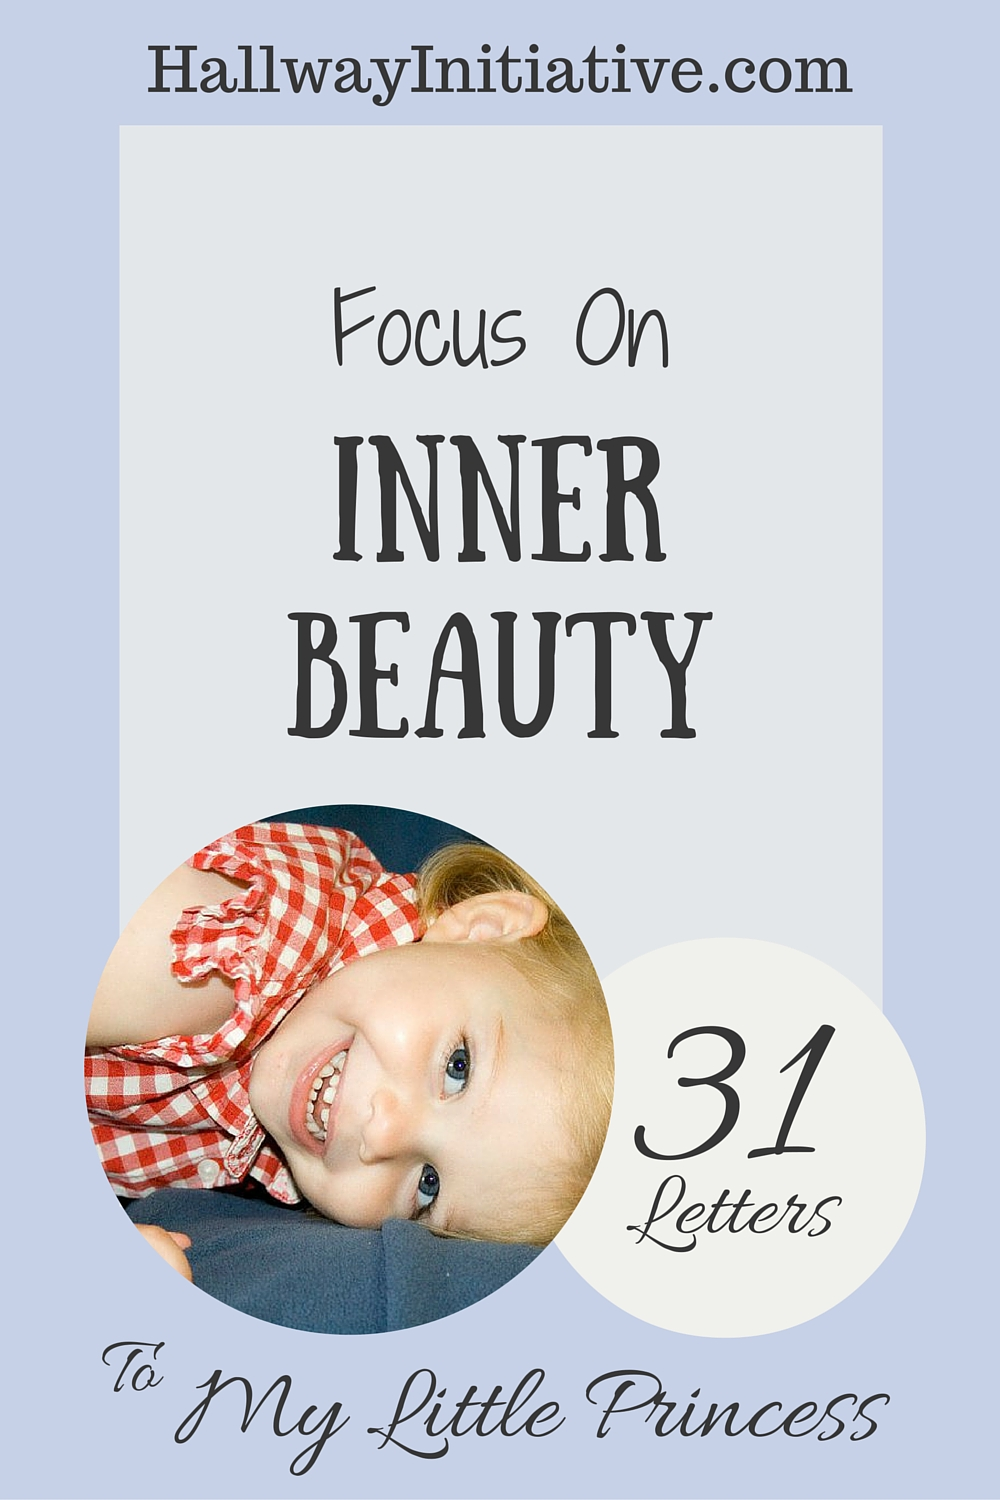 Focus on inner beauty